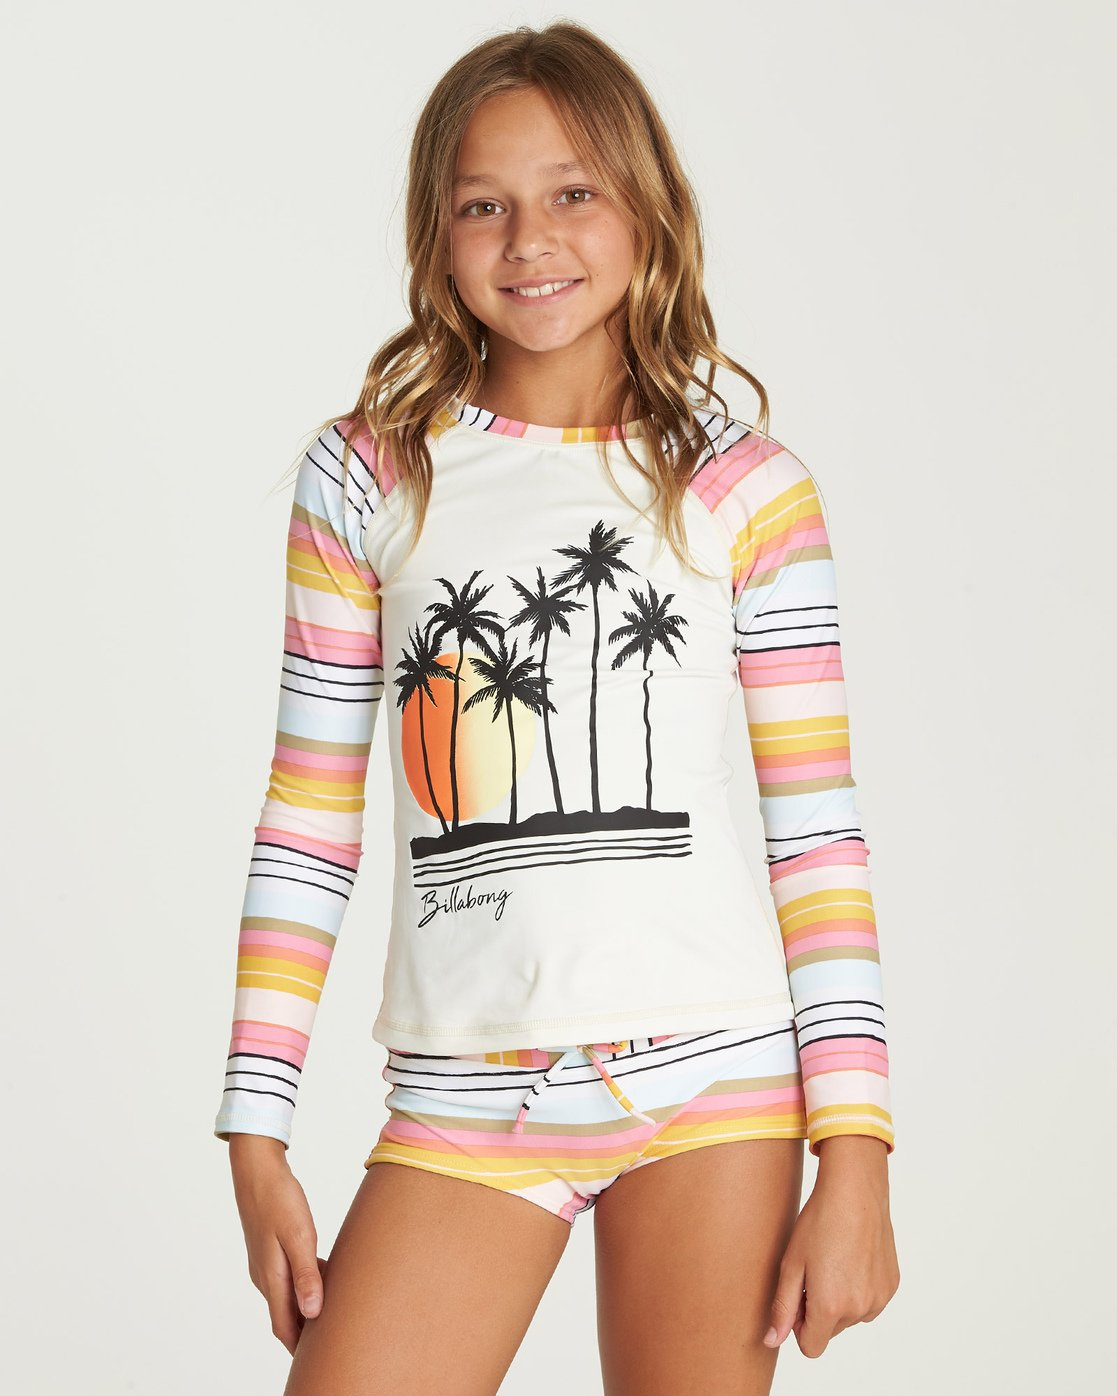 Billabong Girls Big Sunny Song One Piece Swimsuit